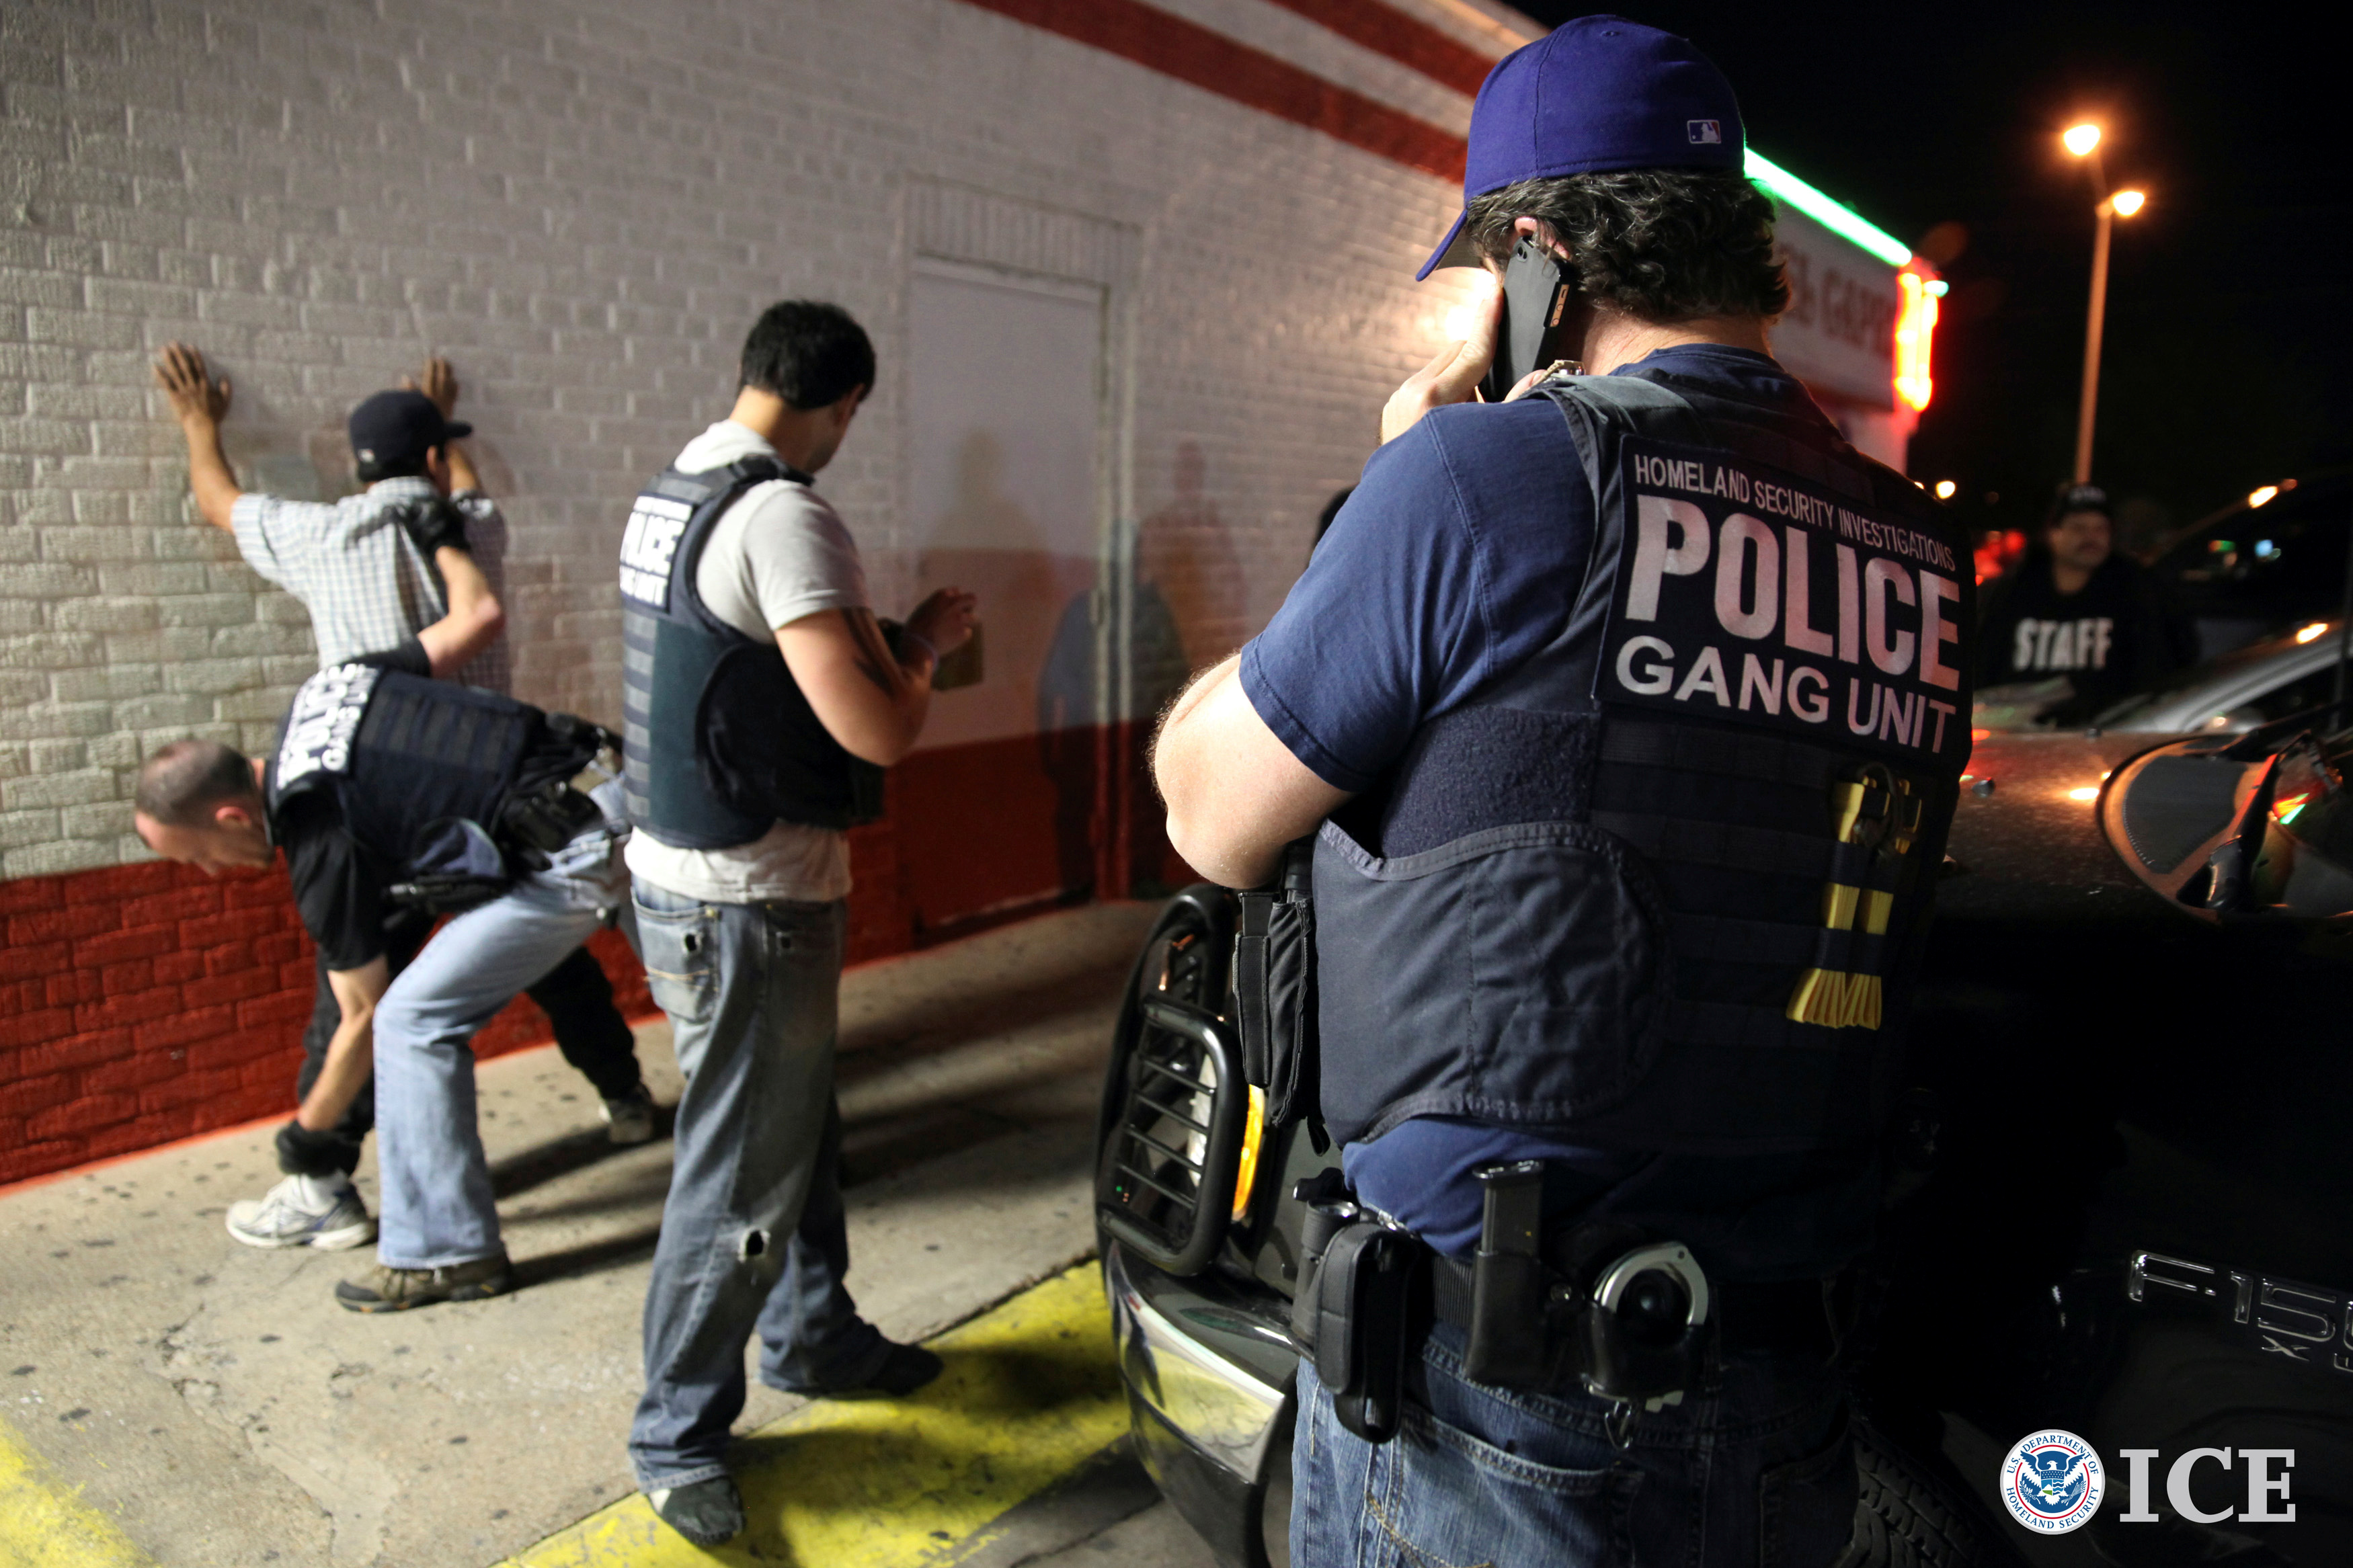 """Agents surround man up against a wall, on has """"Homeland Security Investigations POLICE Gang Unit"""" on his vest"""